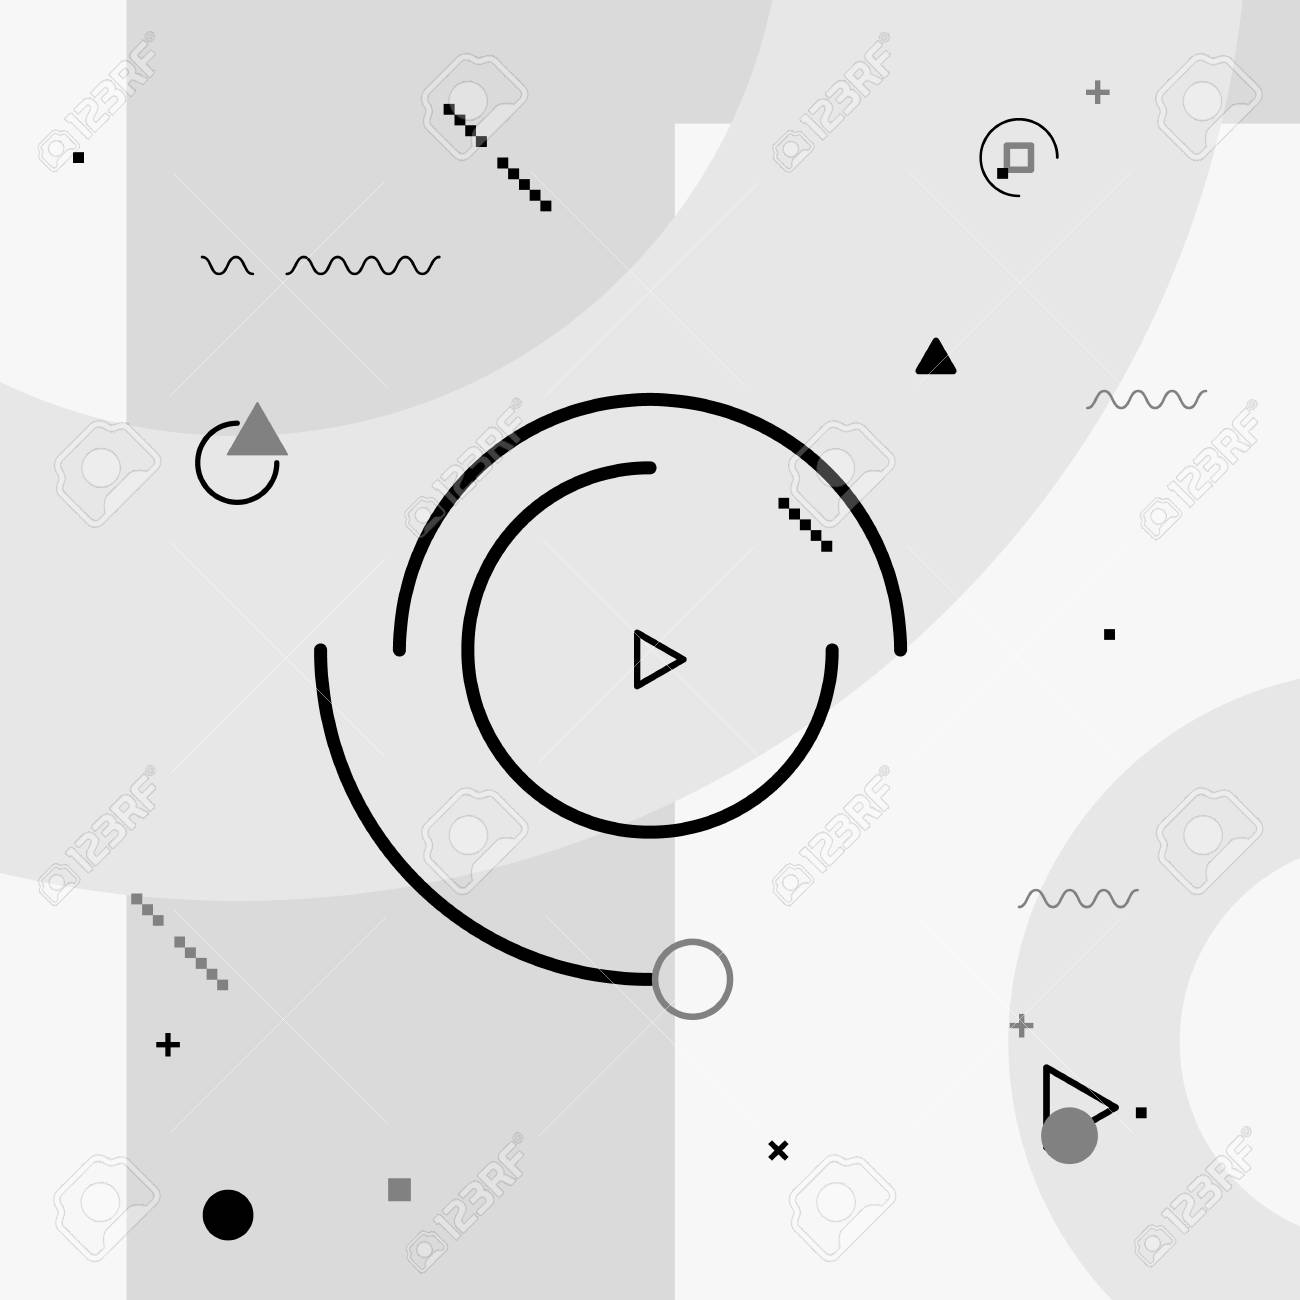 Motion graphics elements  Black and white composition  Vector